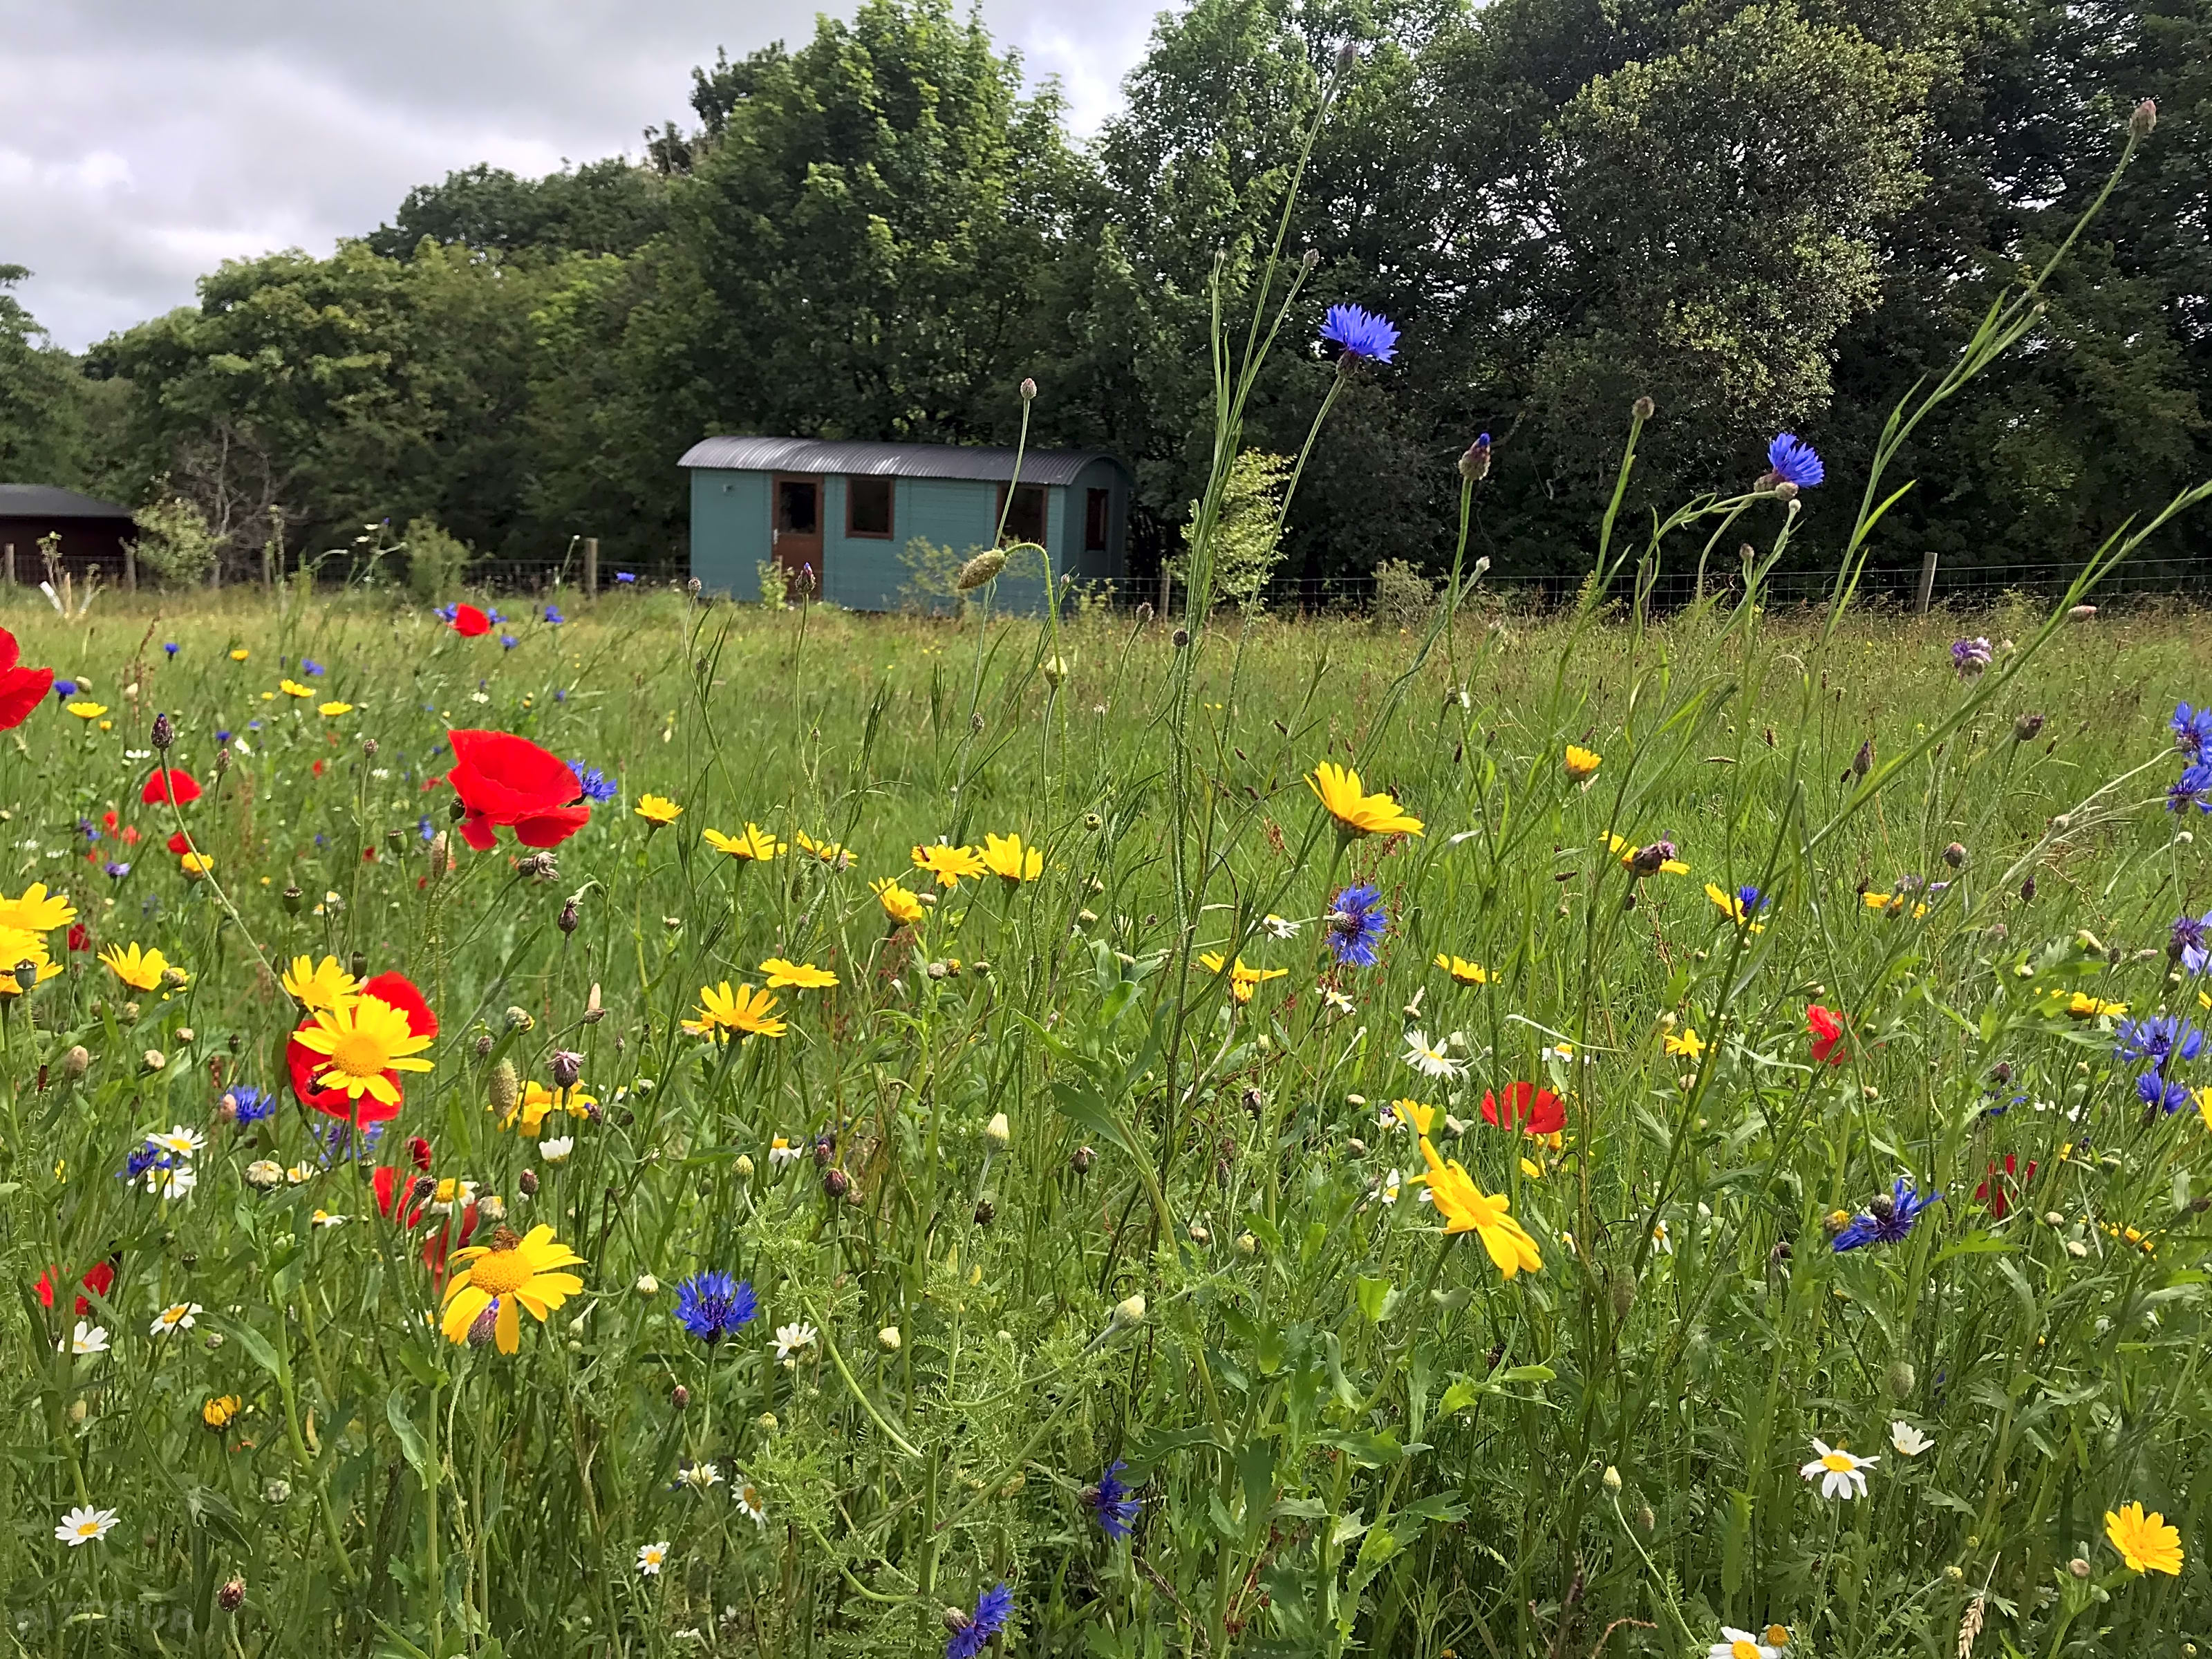 Wild Meadow Camping, Plwmp - Updated 2021 prices - Pitchup®